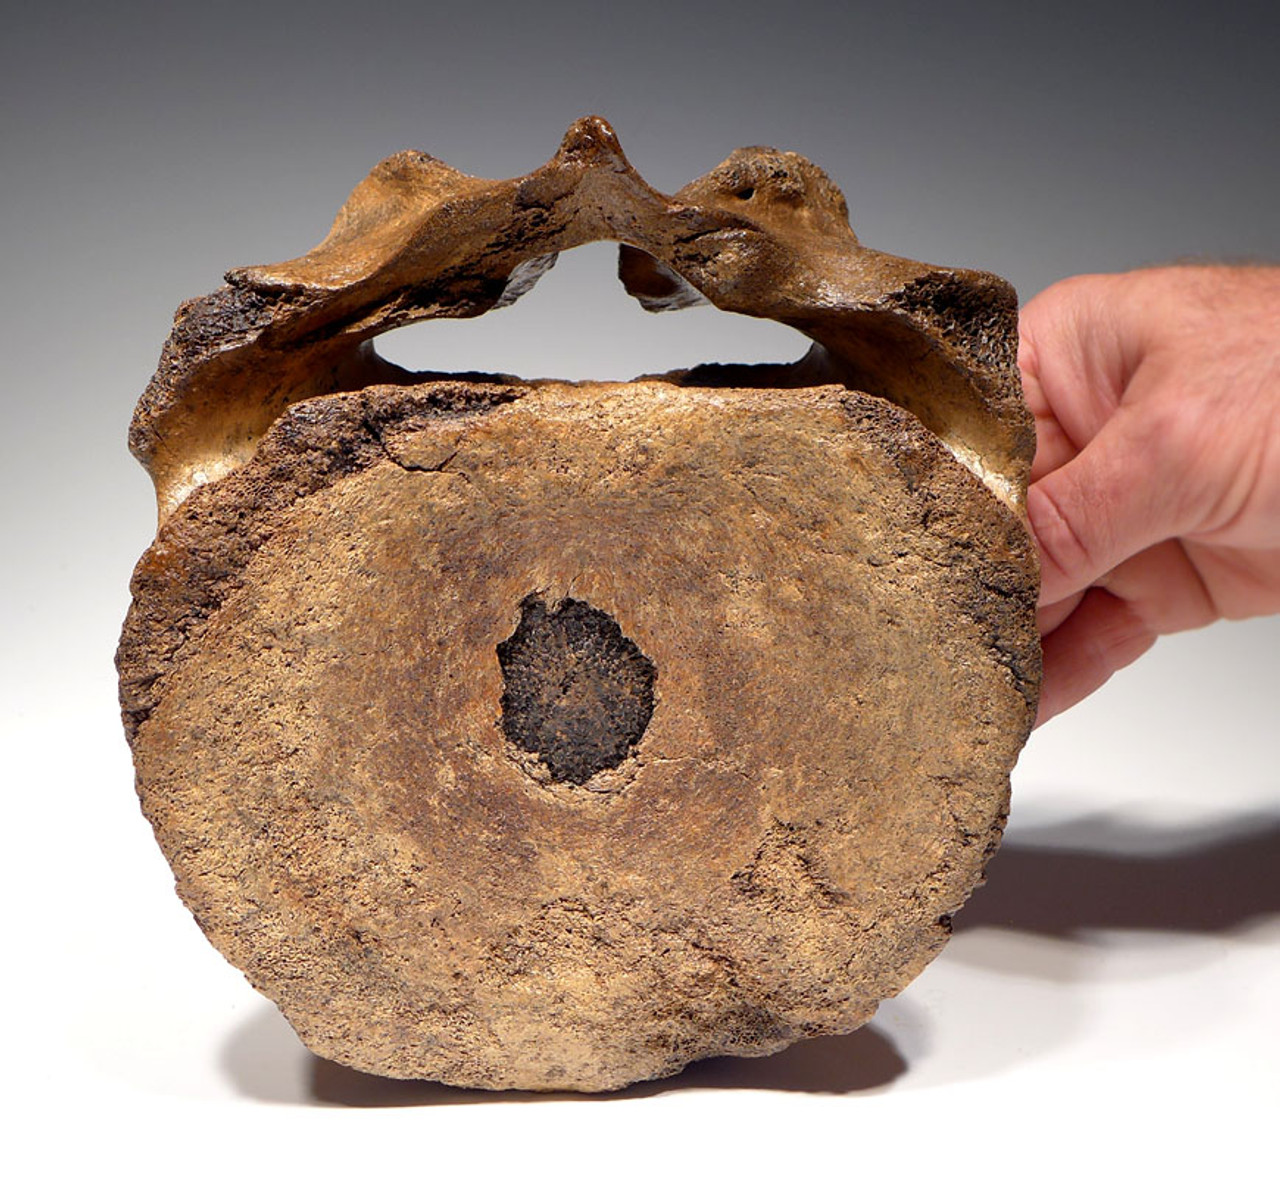 LMX120 - INTACT LARGE WOOLLY MAMMOTH CERVICAL NECK VERTEBRA WITH DORSAL PROCESS